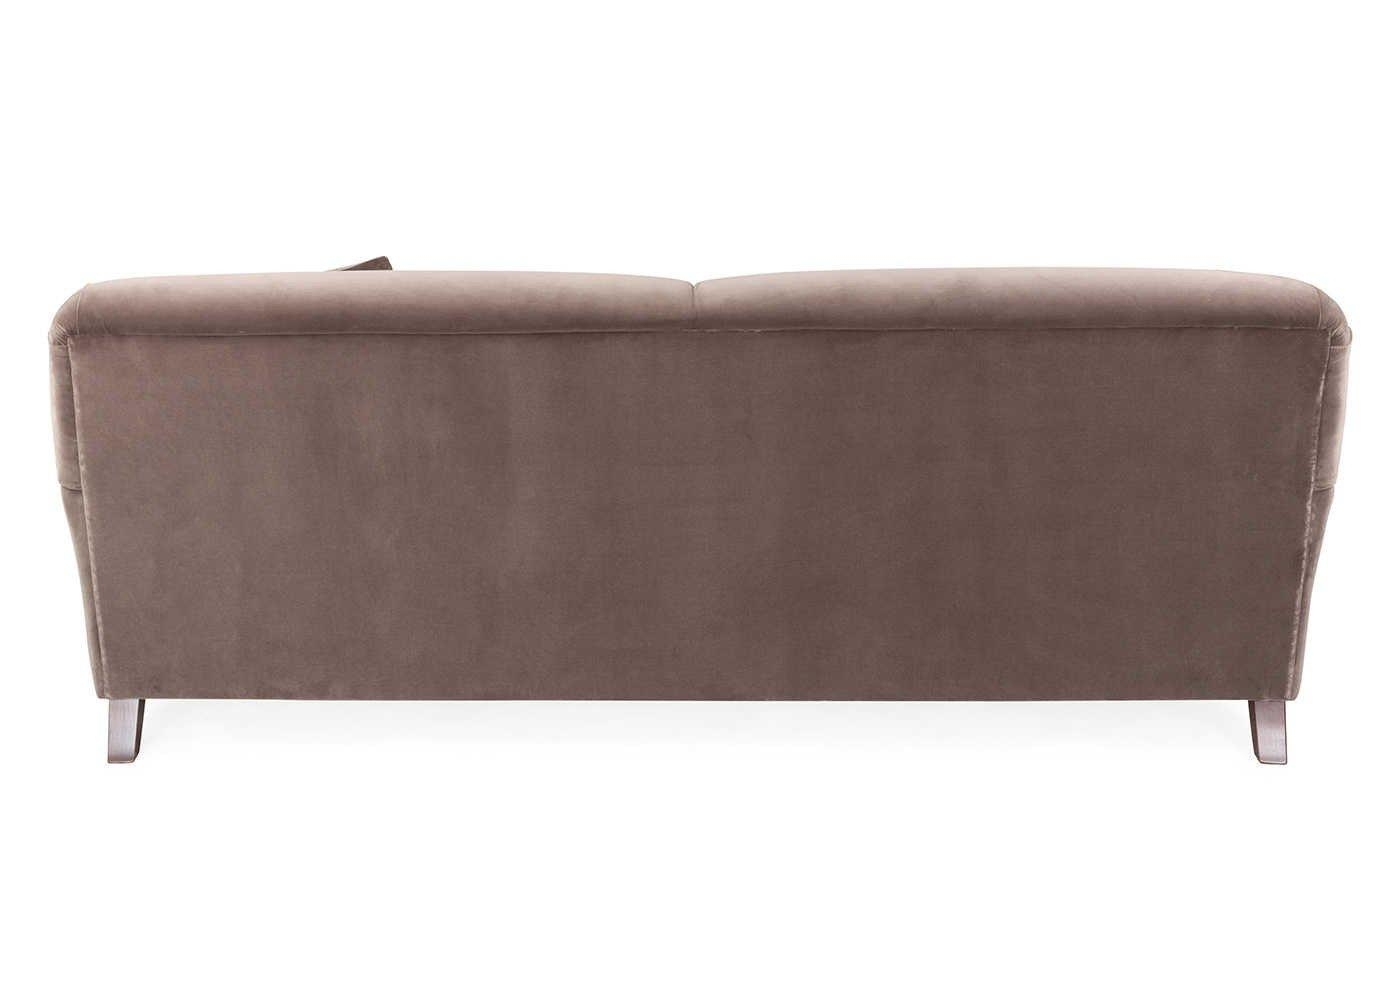 Hampstead 4 Seater Sofa – 4 Seater Sofa – Sofas Intended For Four Seat Sofas (Image 16 of 20)